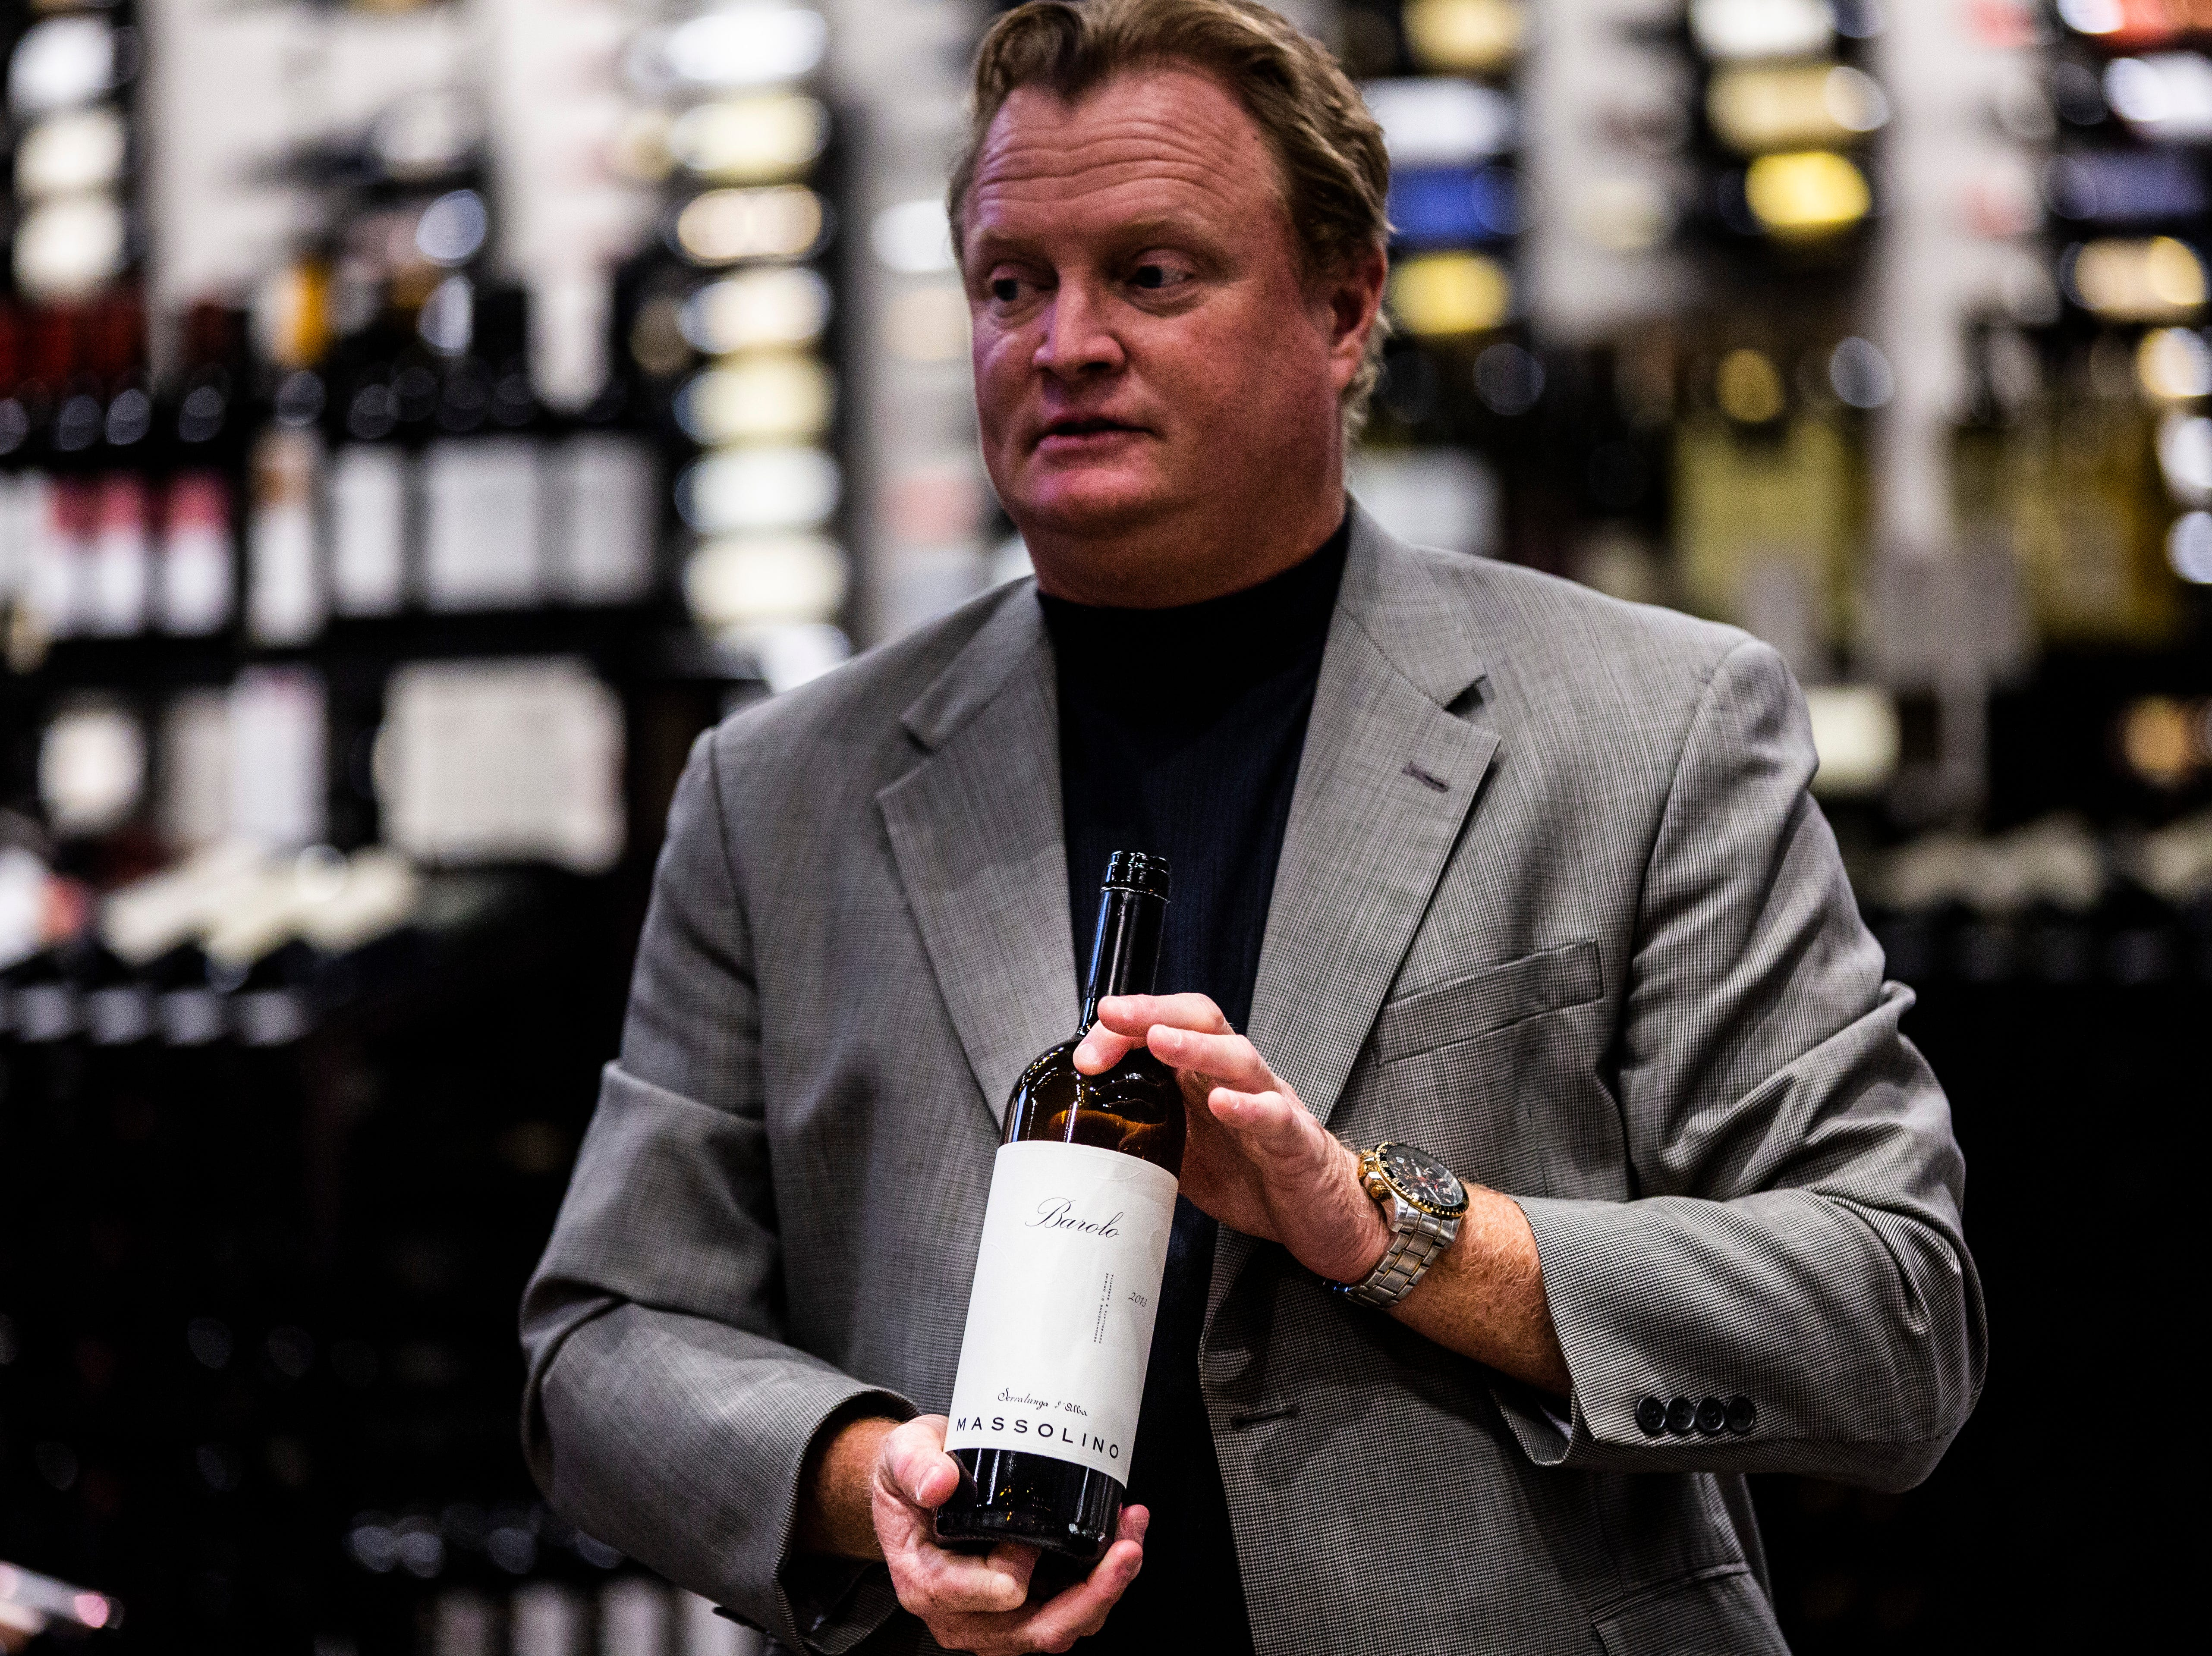 John J. Burke, from Break Thru Beverage Group, reveals the bottle of red wine that Eric Blais, the wine director and certified sommelier at USS Nemo, attempted to identify during a blind taste-test in the Somms Showdown at The Cave Bistro & Wine Bar in Naples on Tuesday, Nov. 13, 2018.